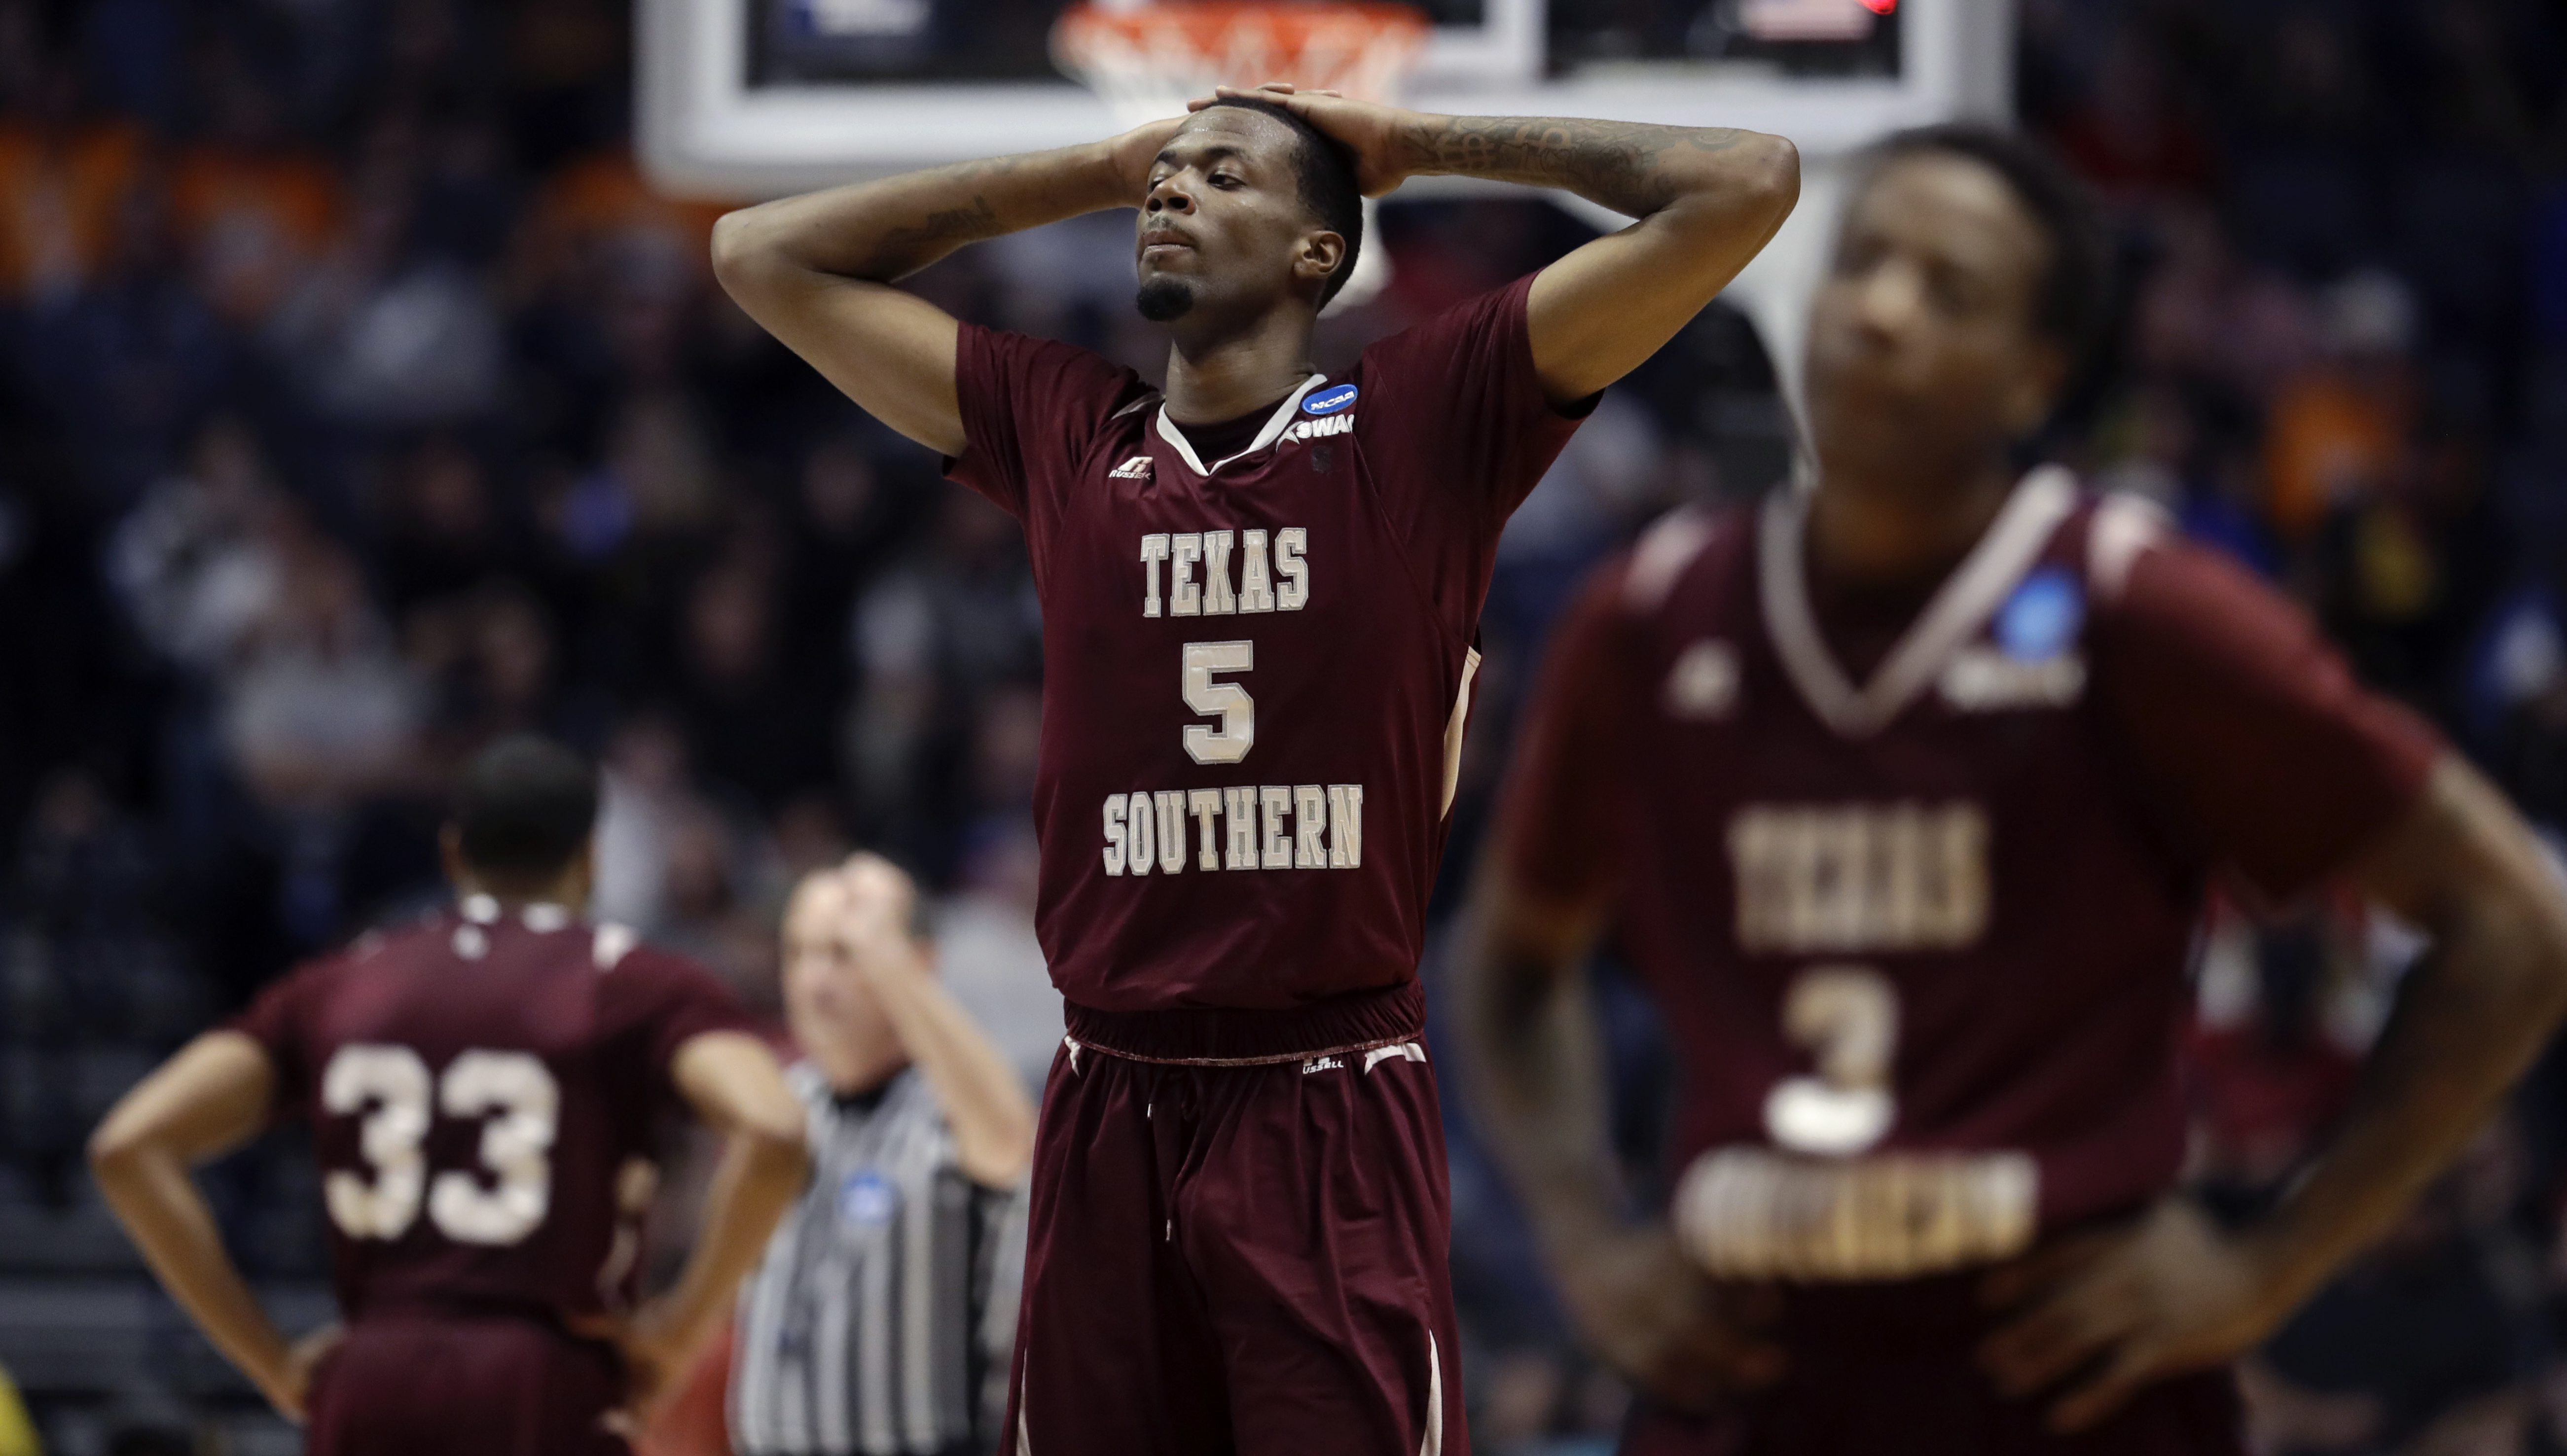 NCAA Texas Southern Xavier Basketball